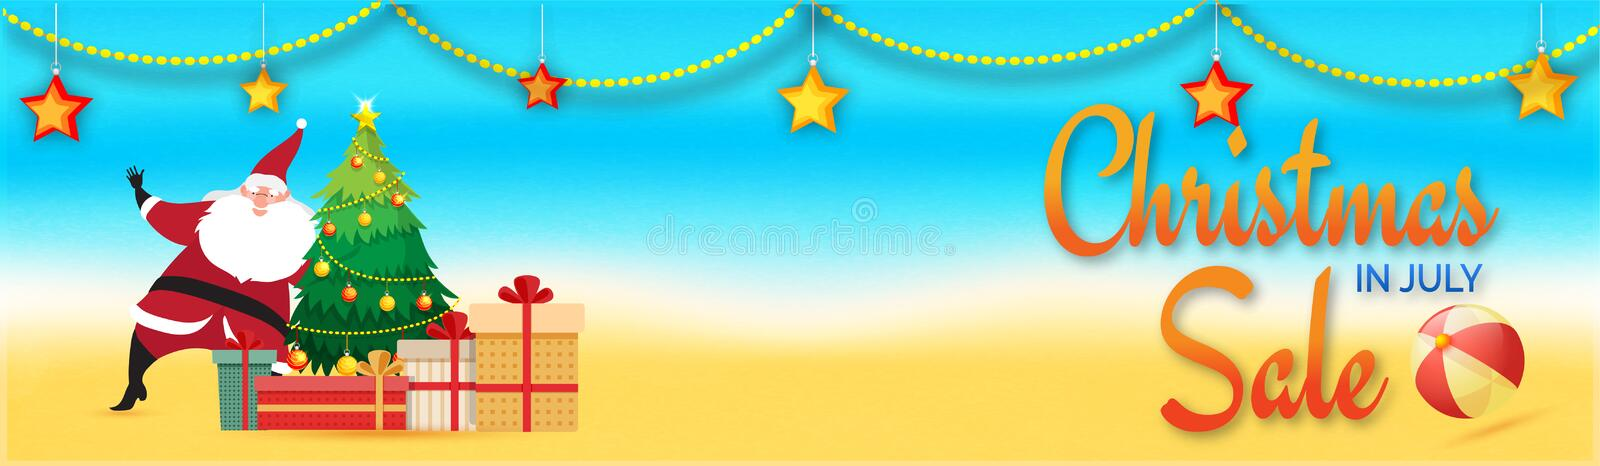 Christmas in July Sale, web header or banner design with Santa C. Laus, Xmas Tree, Gift Boxes and hanging stars on beach background royalty free illustration